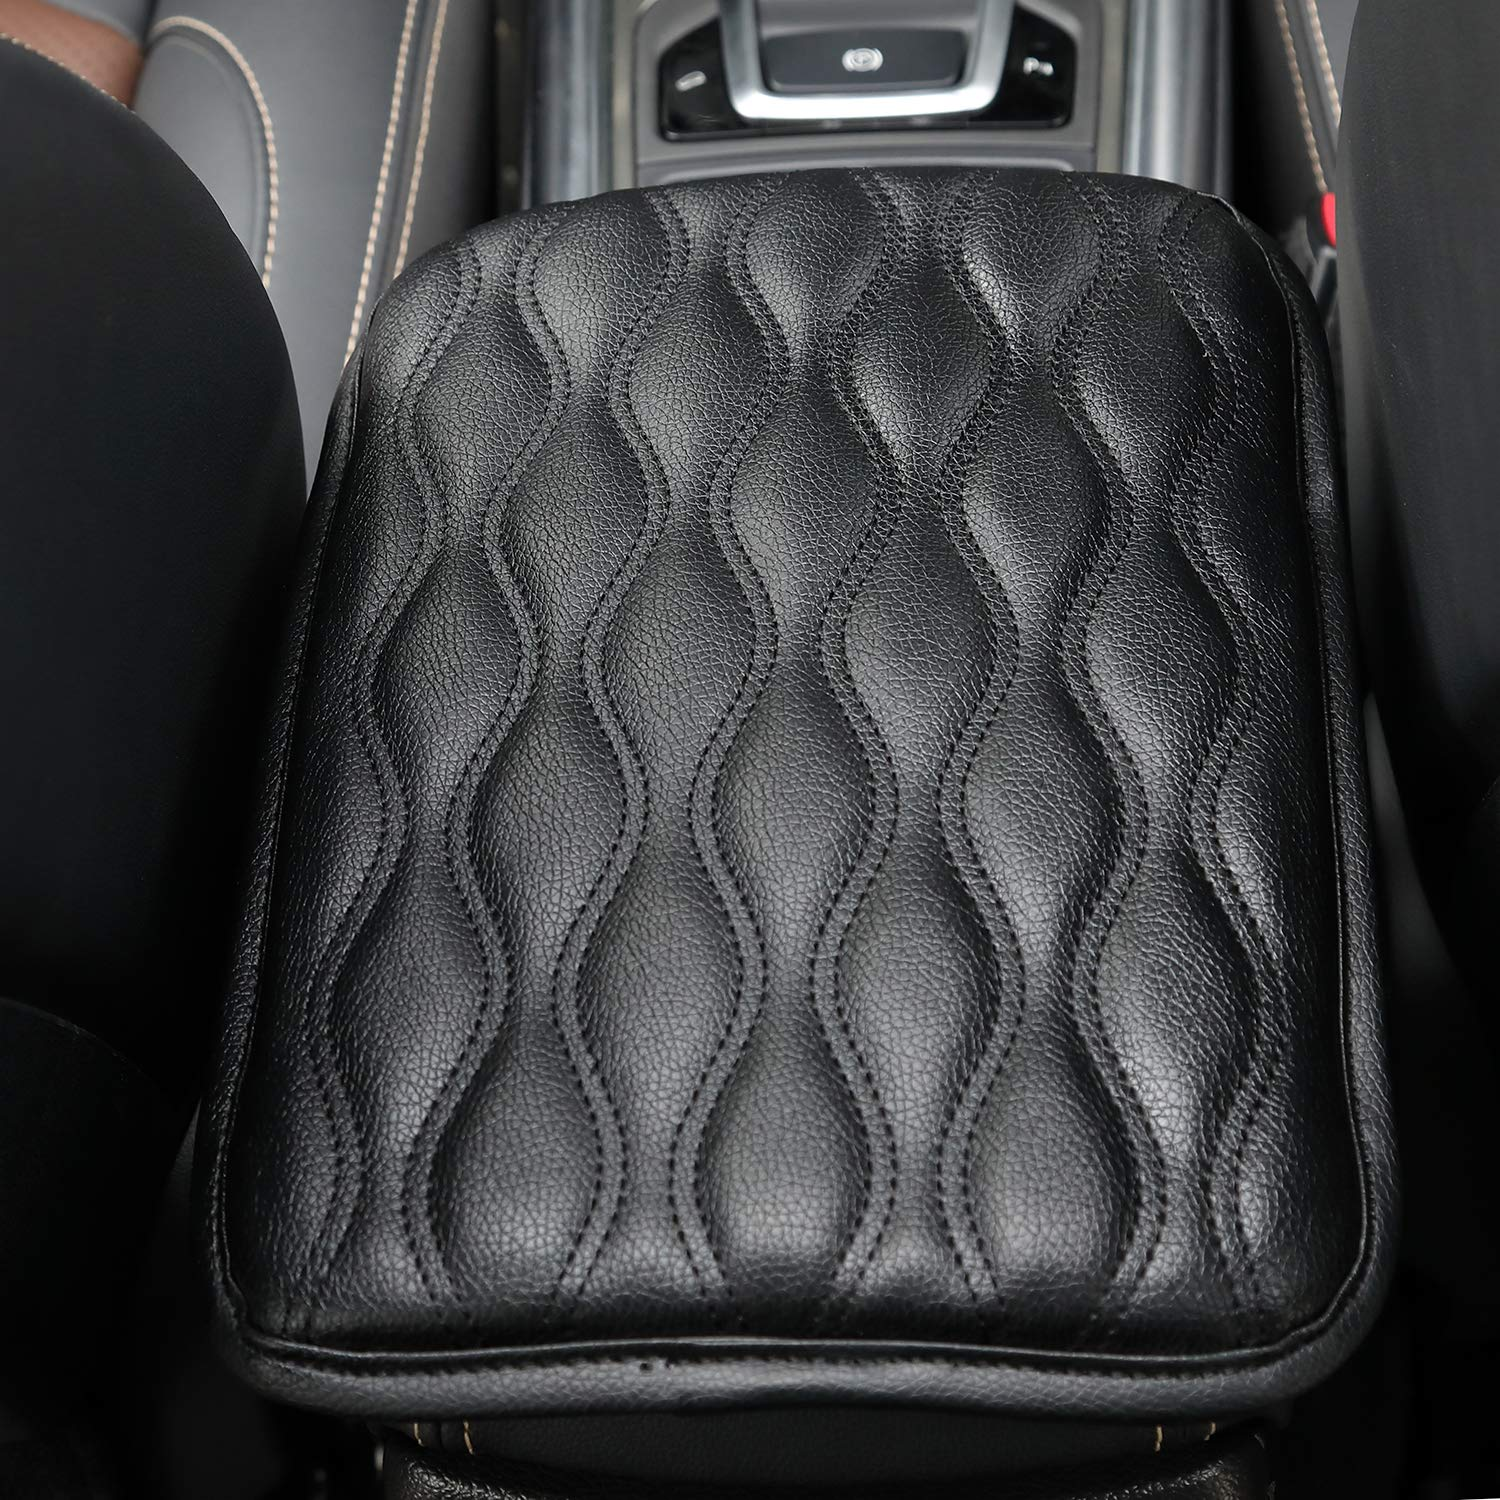 VRGT Car Center Console Armrest Cover Pad,Soft Auto Arm Rest Cushion fit Most Car Vehicle SUV Truck Car 12.6x7.5inch